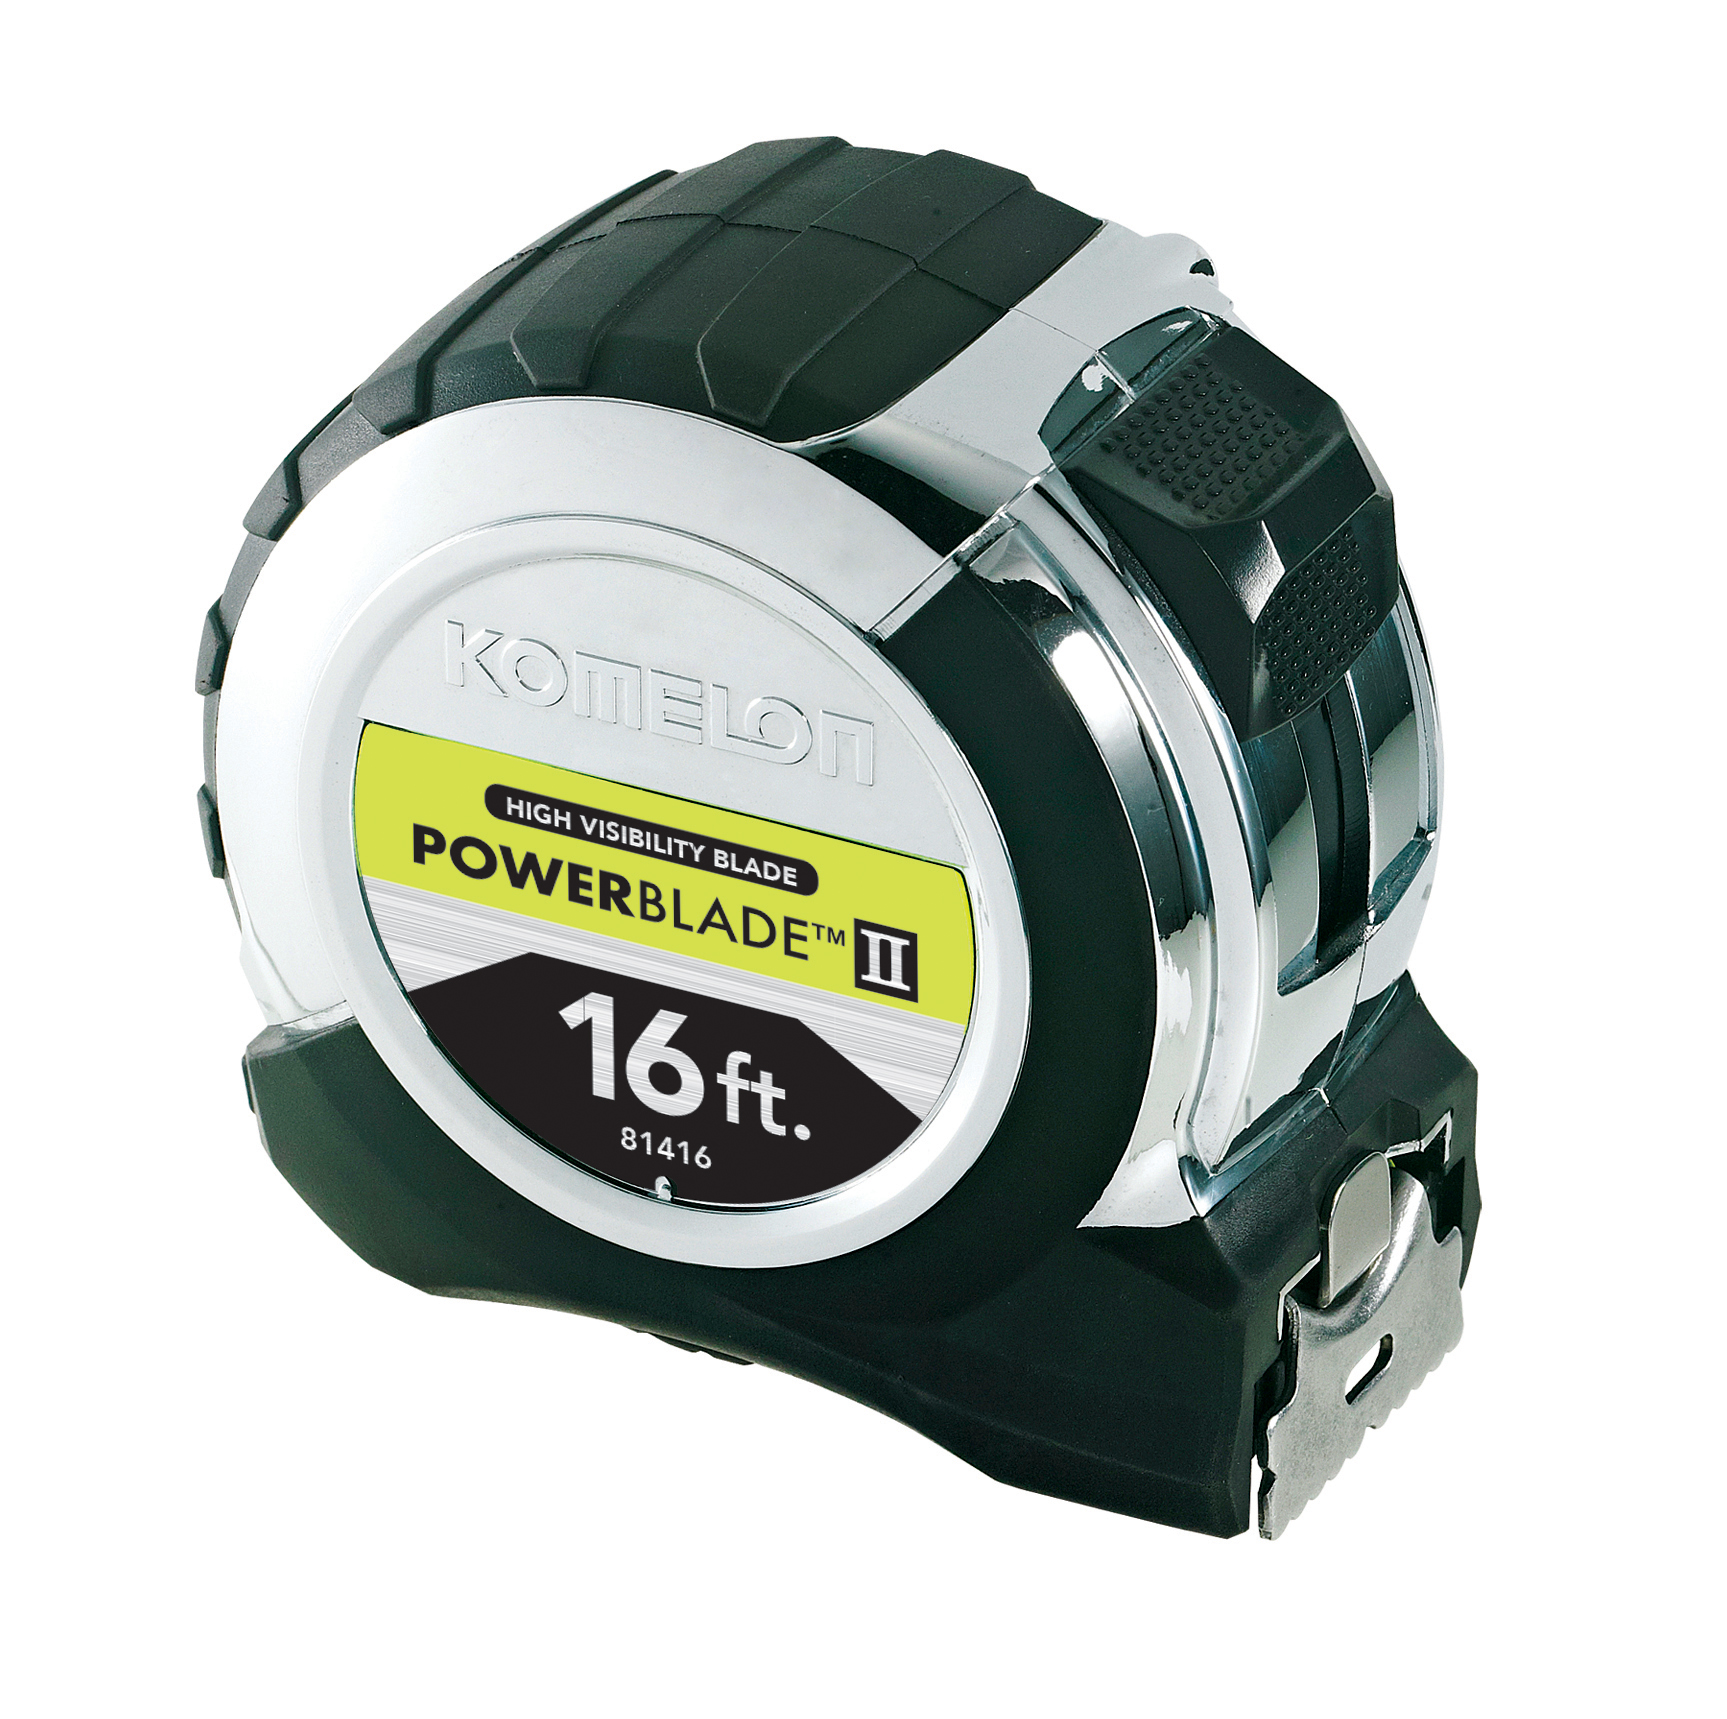 Komelon 16ft Chrome Powerblade II Tape Measure